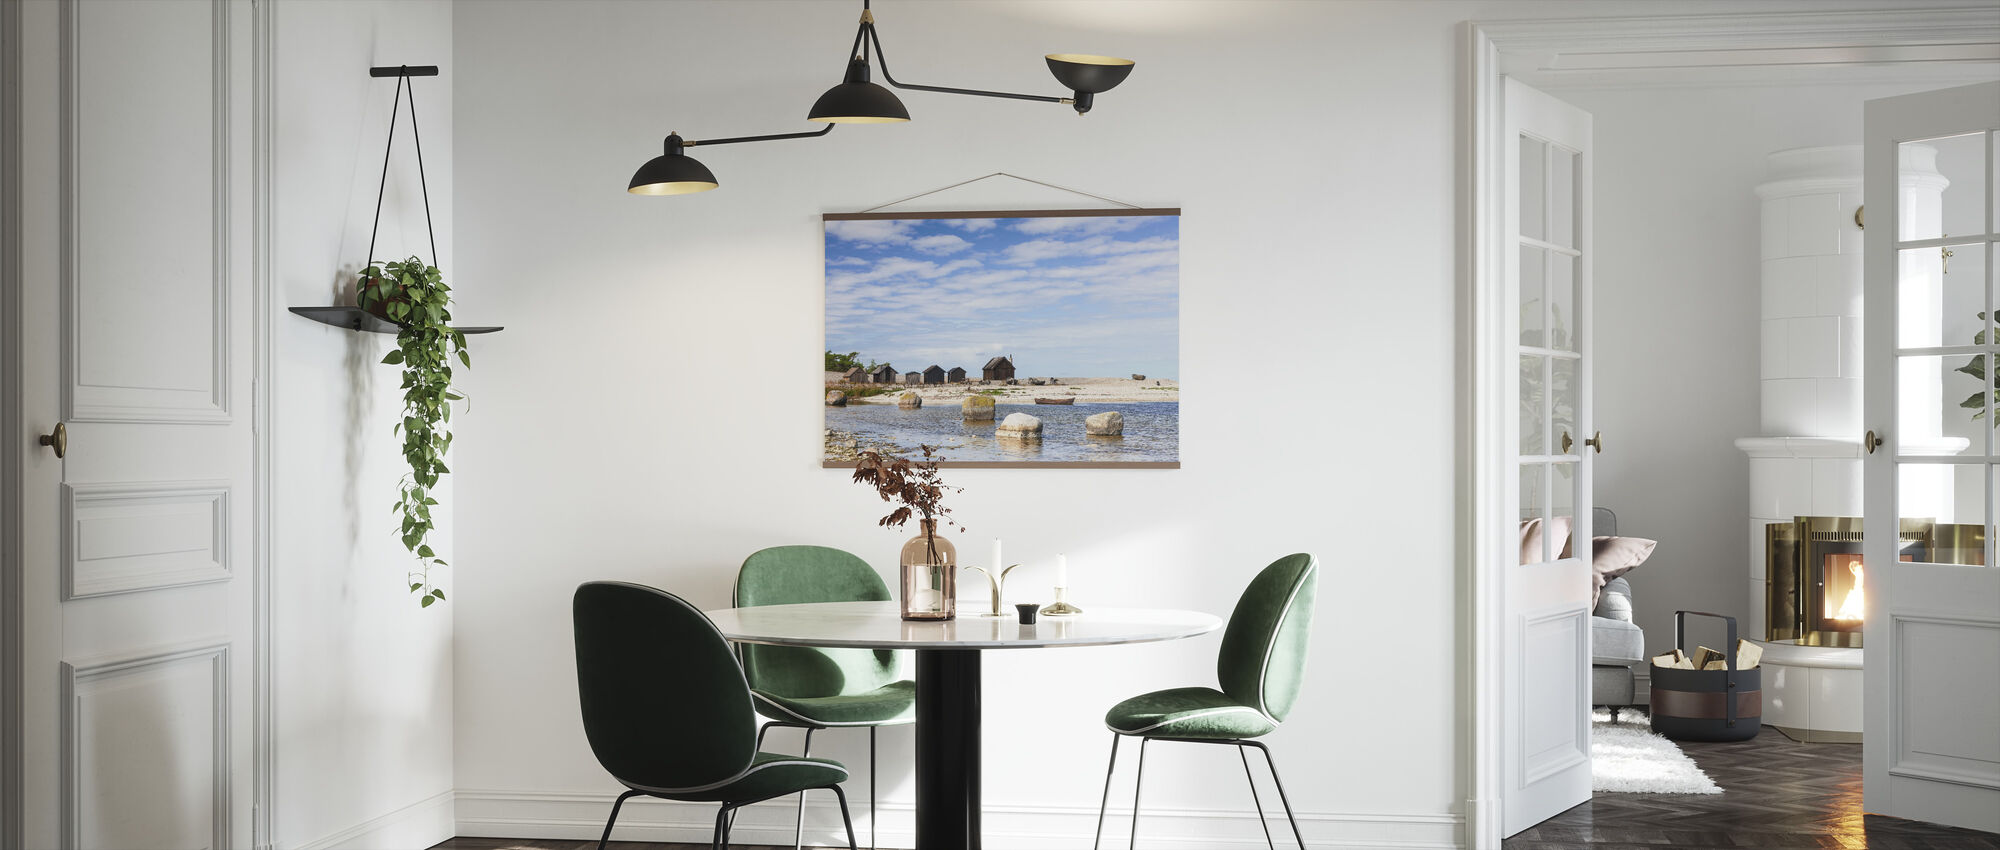 Old Fishing Huts - Poster - Kitchen